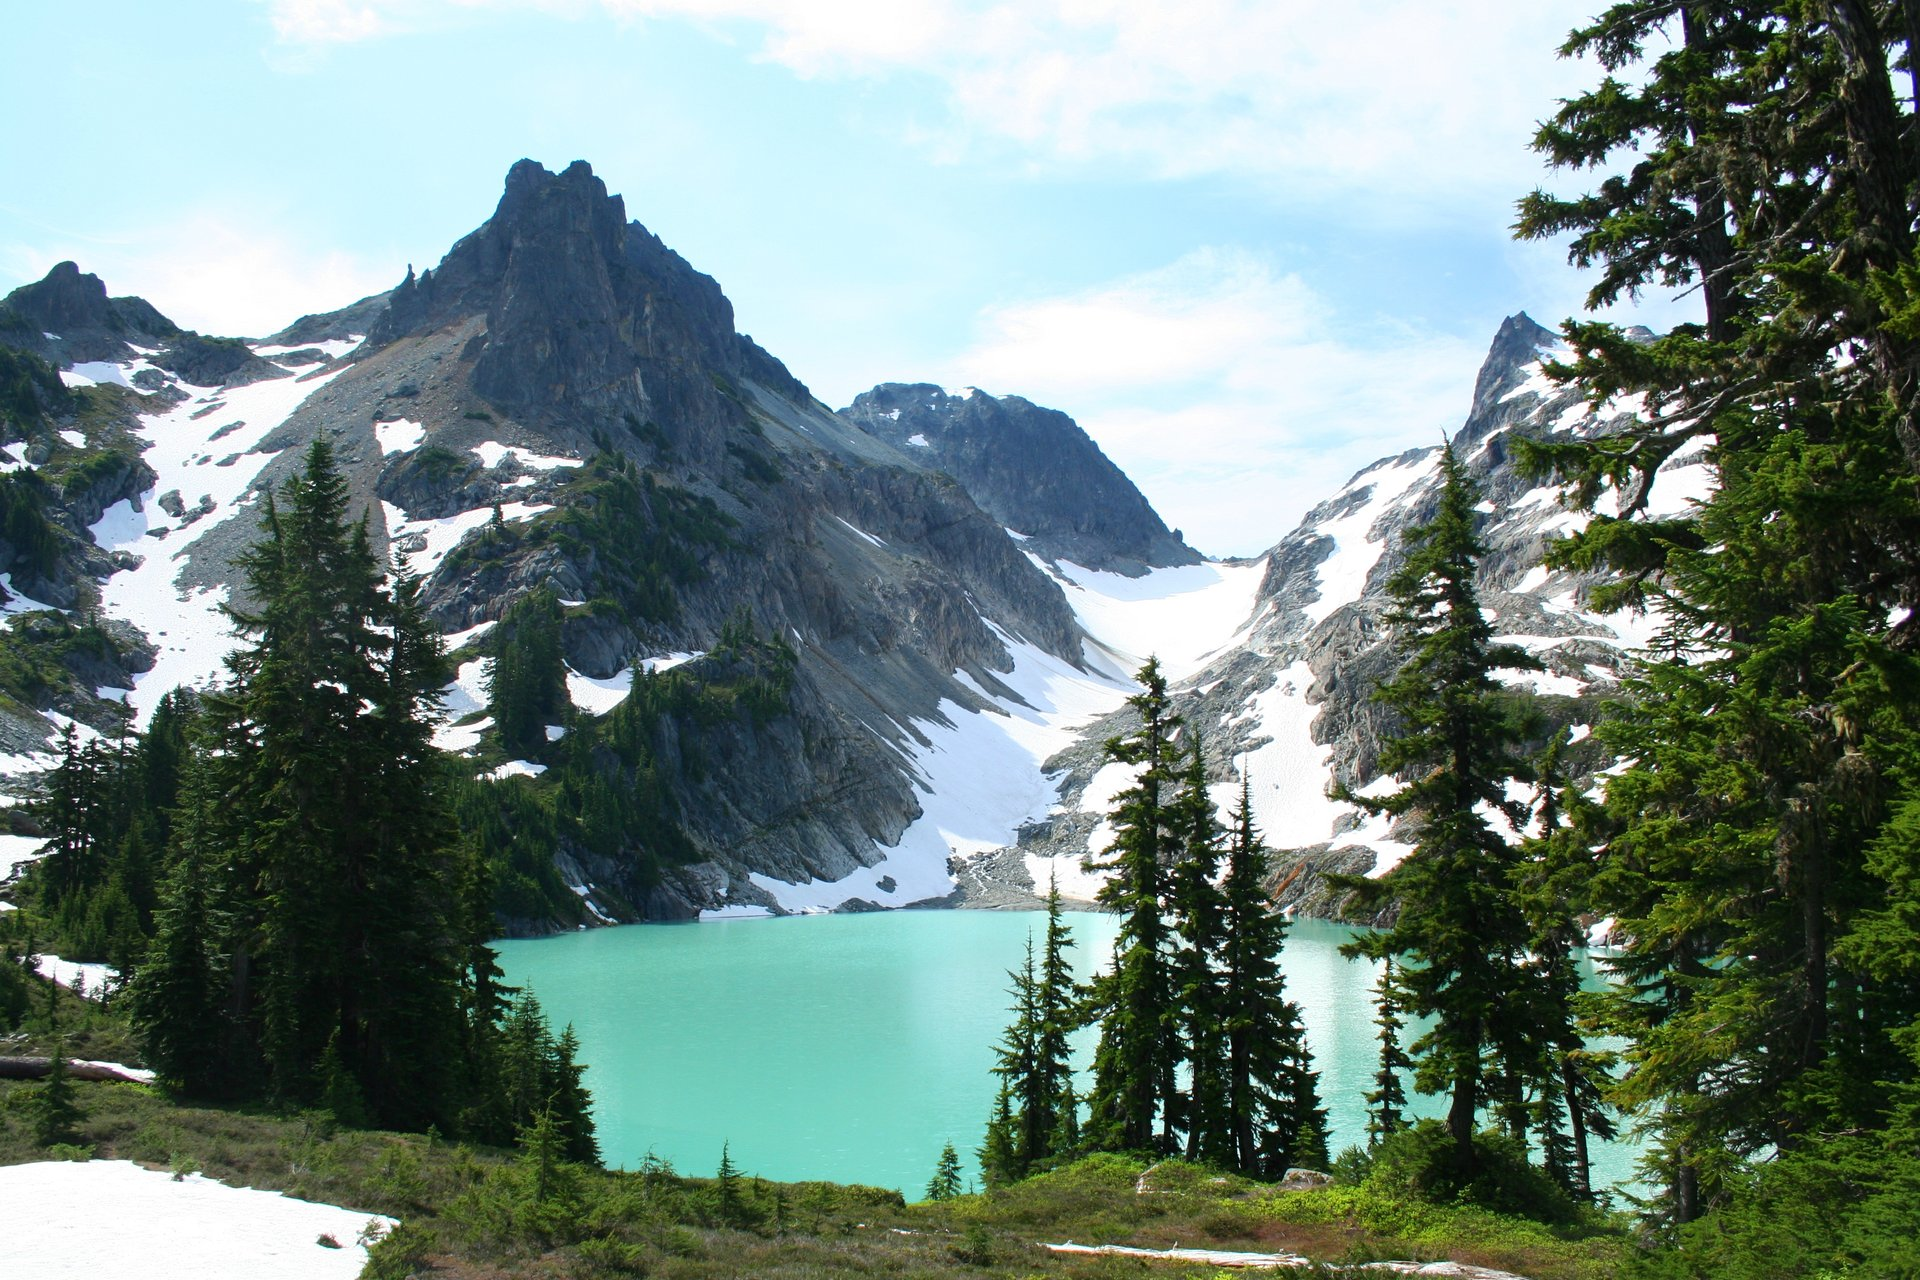 Jade Lake in Washington 2020 - Best Time